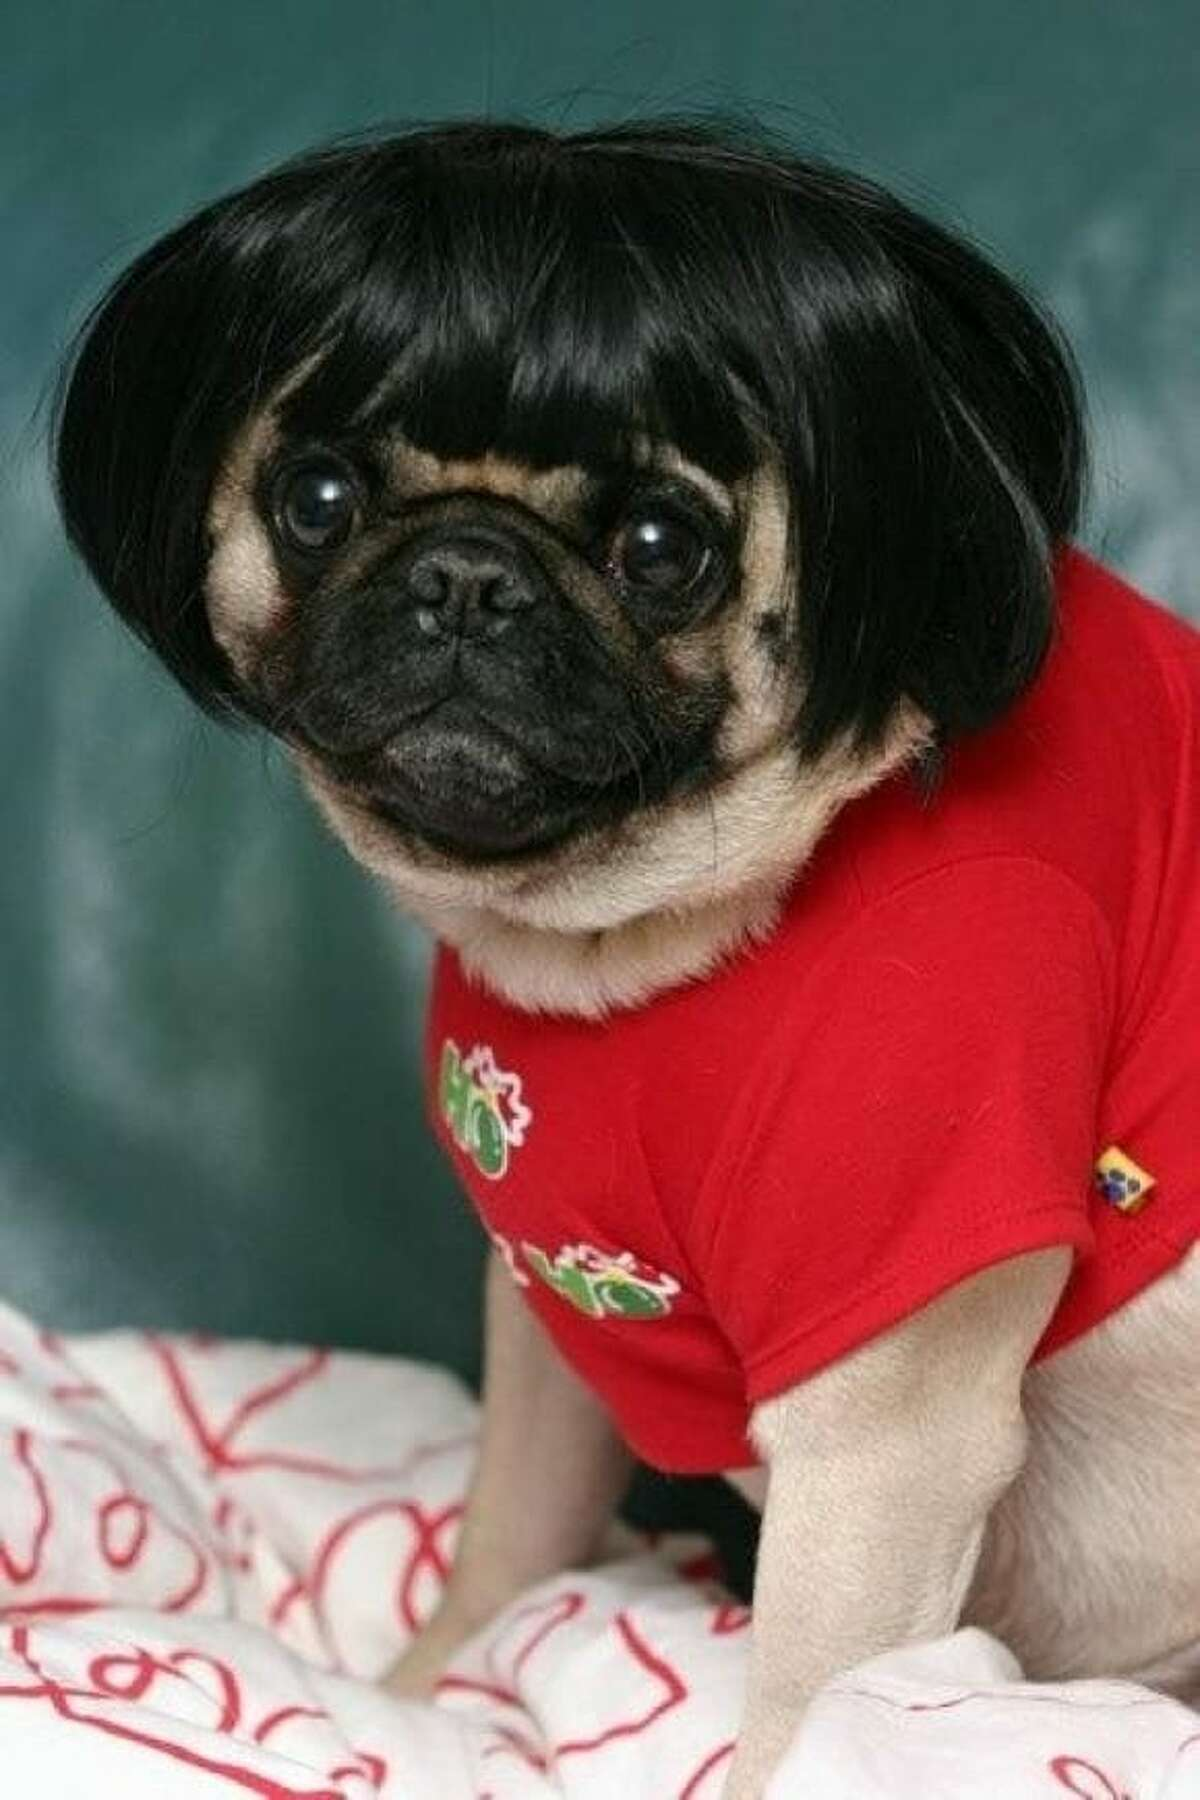 Obie Lopez's pug is giving us Anna Wintour wig vibes with a dashing '90s yearbook backdrop.